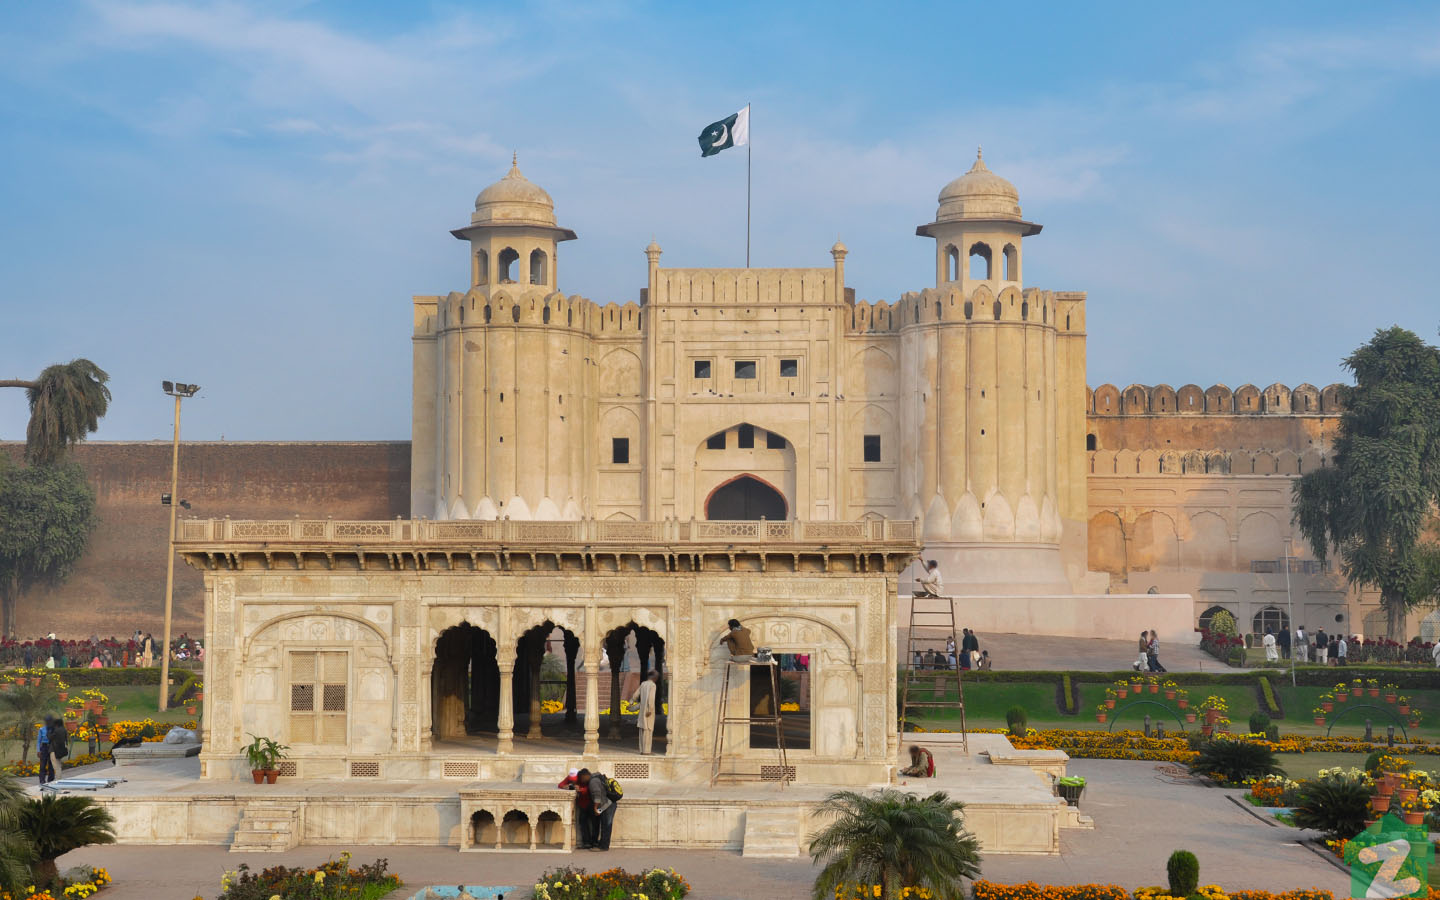 You can also visit Lahore Fort, located just 28 km away from society